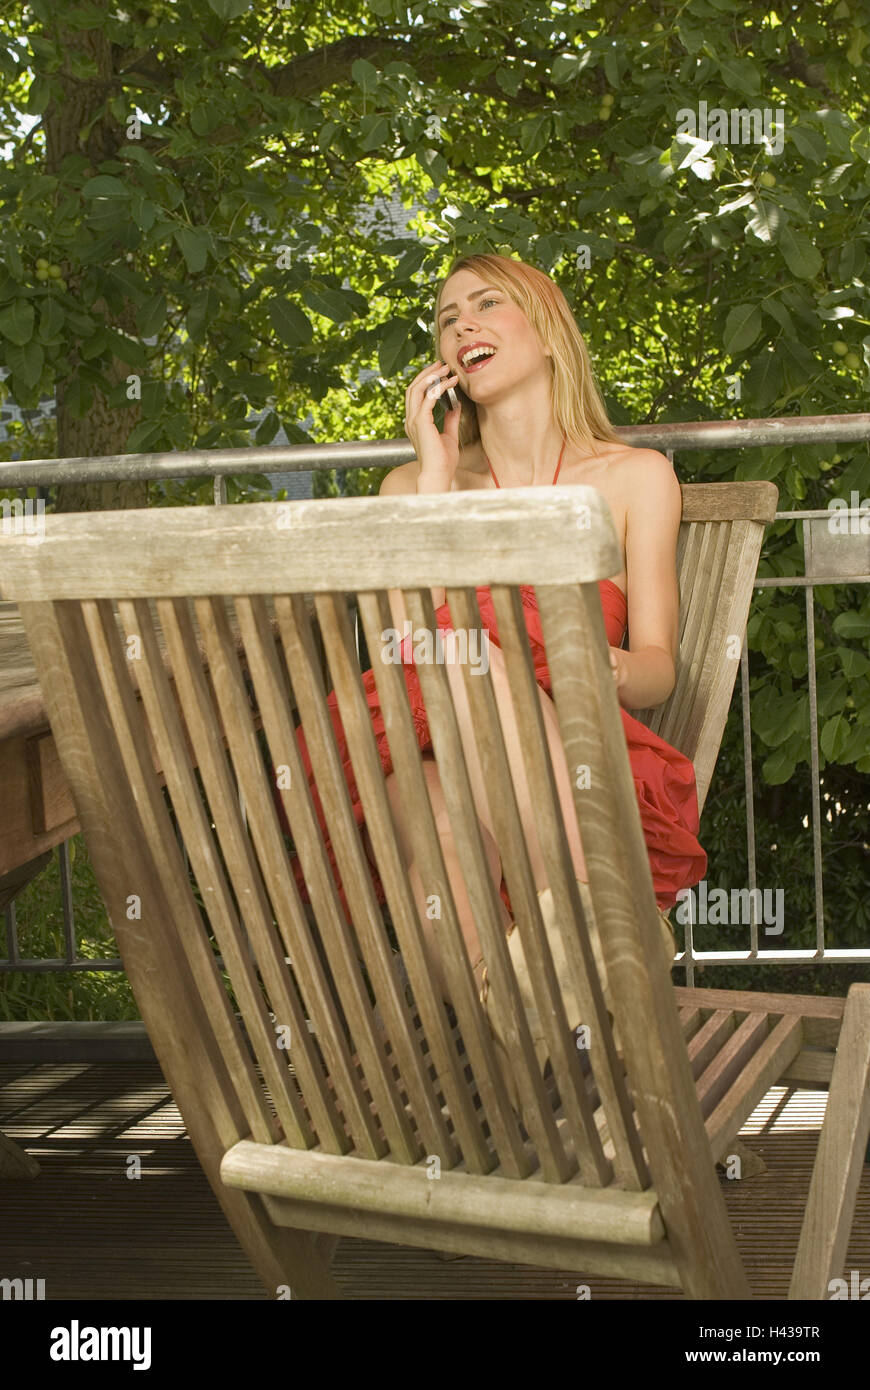 Woman, young, garden chairs, sit, mobile phone, call up, model Stock ...